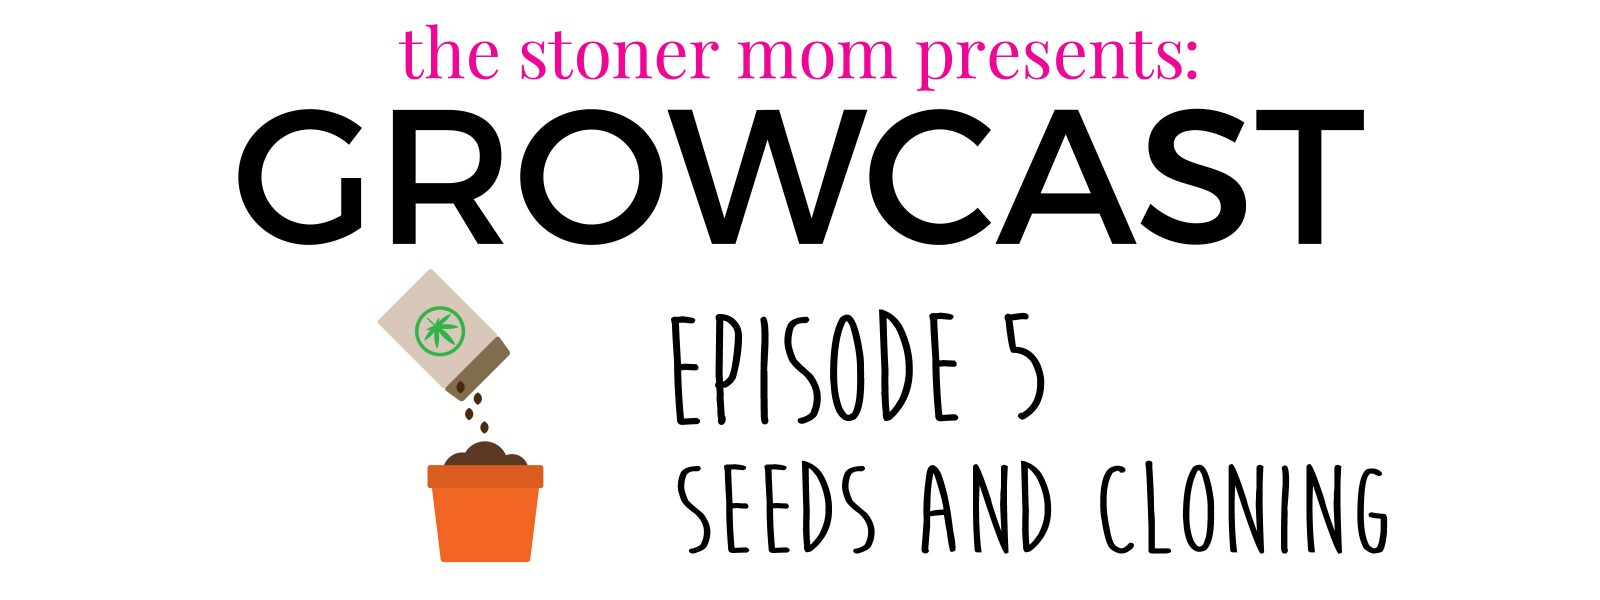 GrowCast Episode 5: Seeds and Cloning